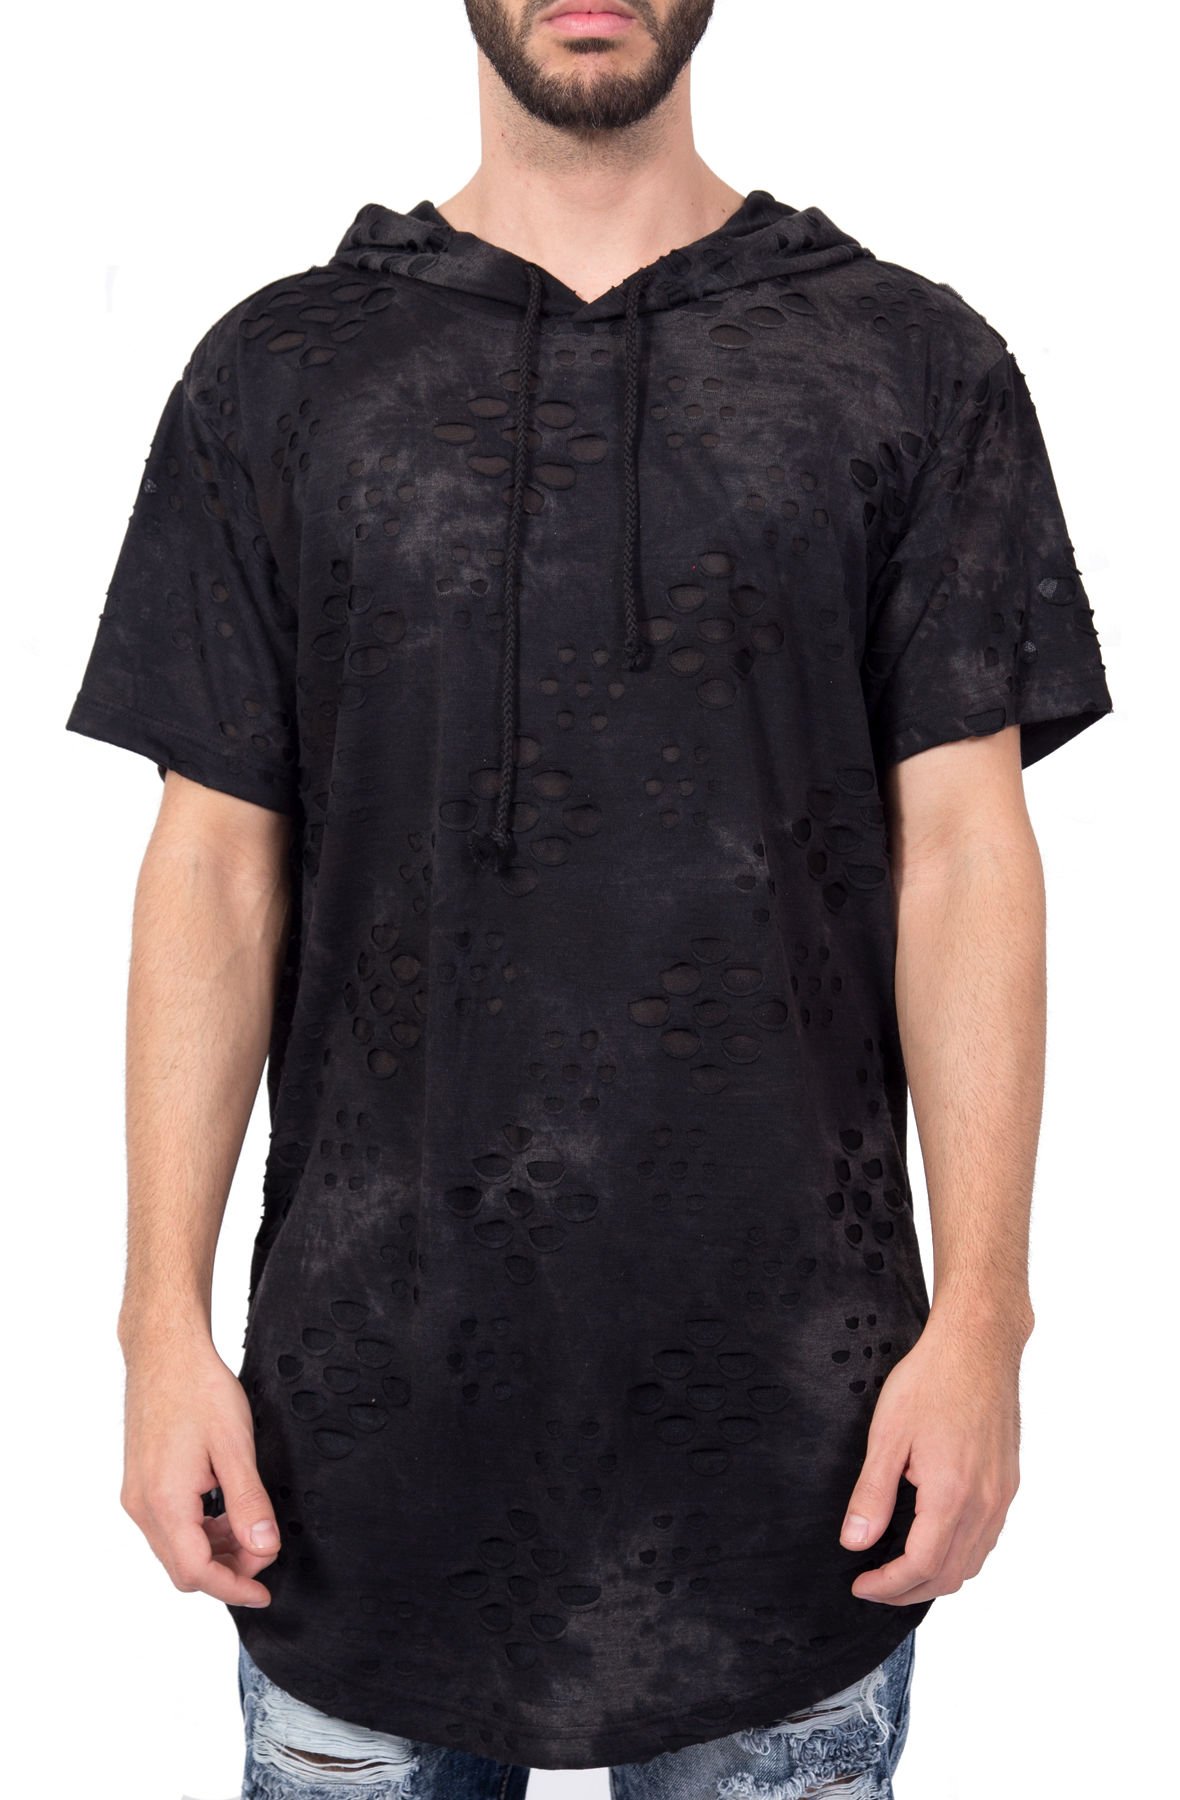 Image of Lightweight Distressed Short Sleeve Hoodie in Black